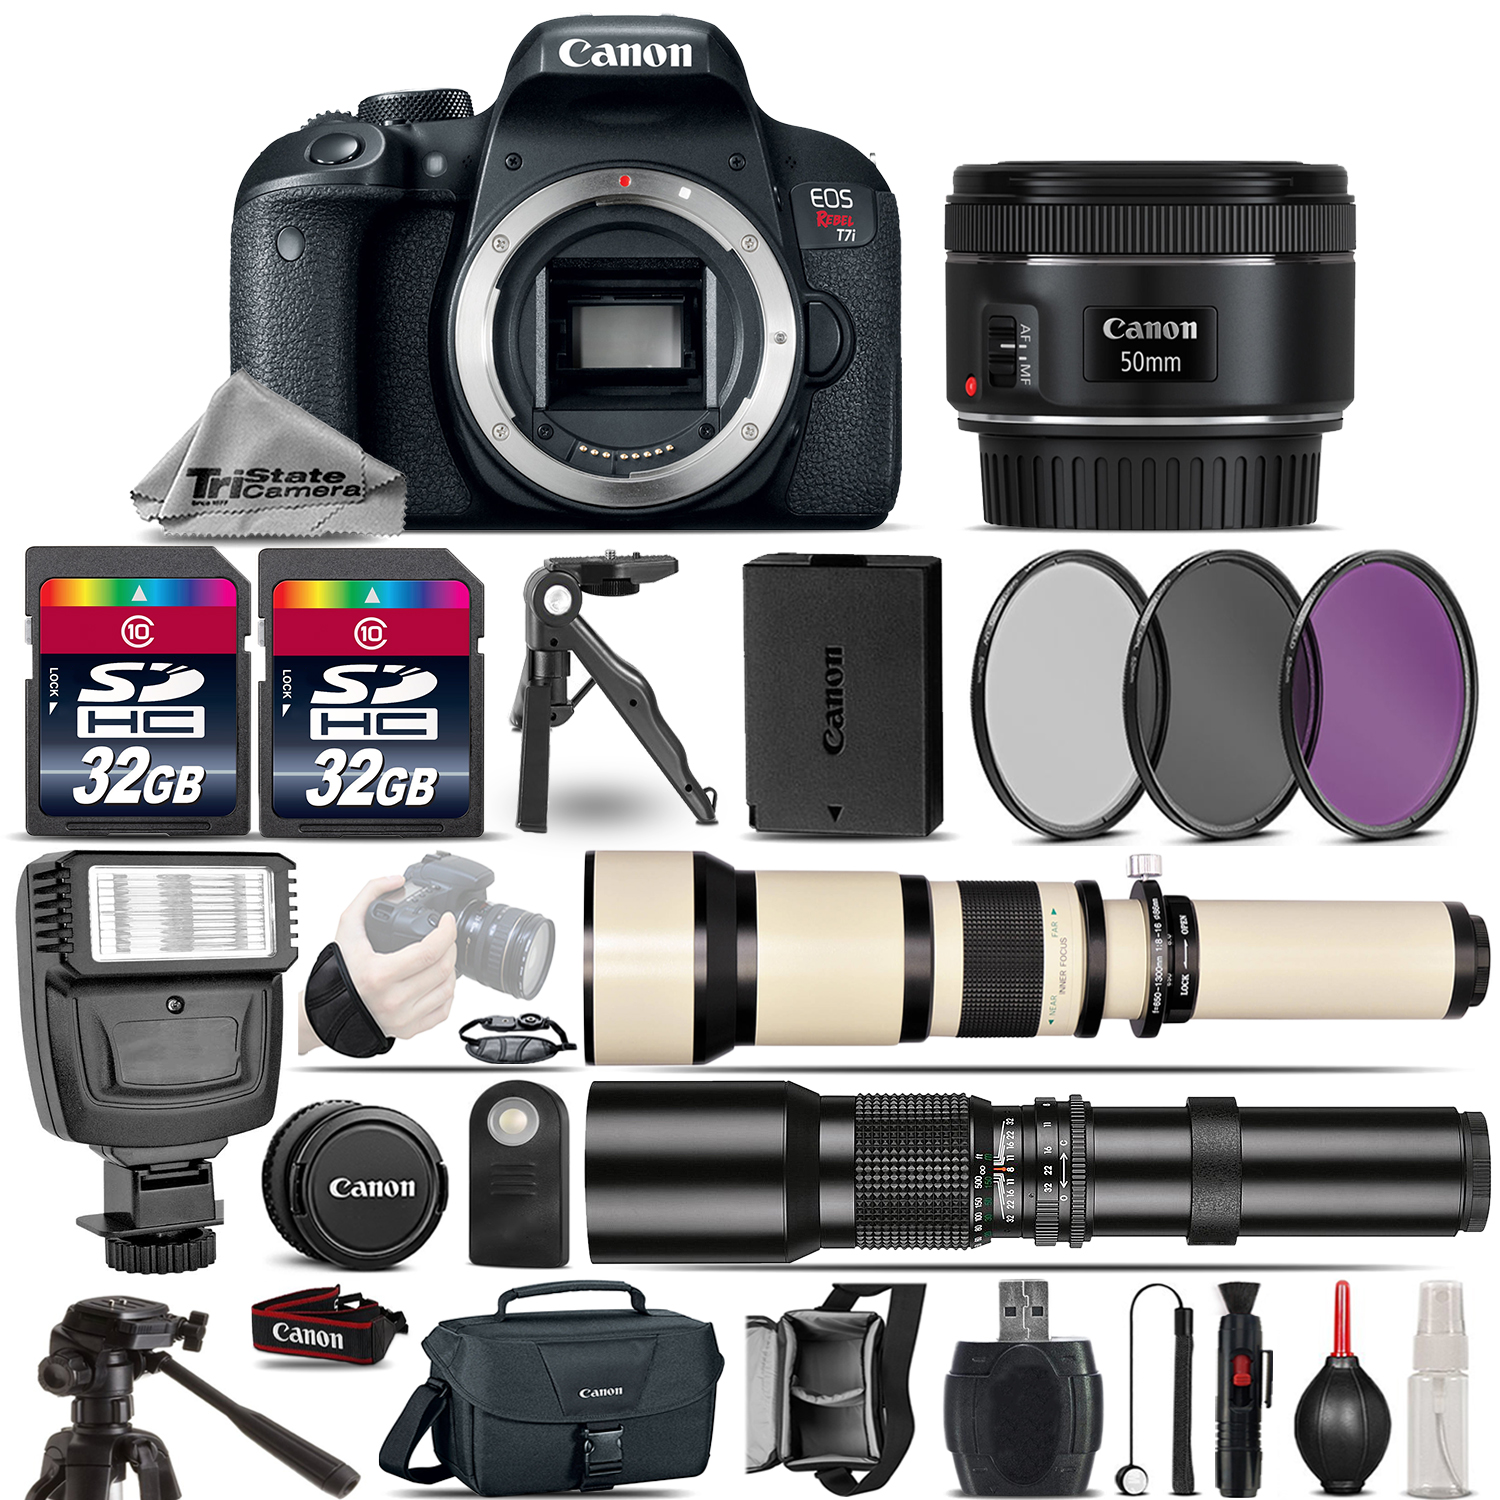 EOS Rebel T7i SLR Camera 800D + 50mm 1.8 + 650-1300mm + 500mm - 64GB Kit *FREE SHIPPING*